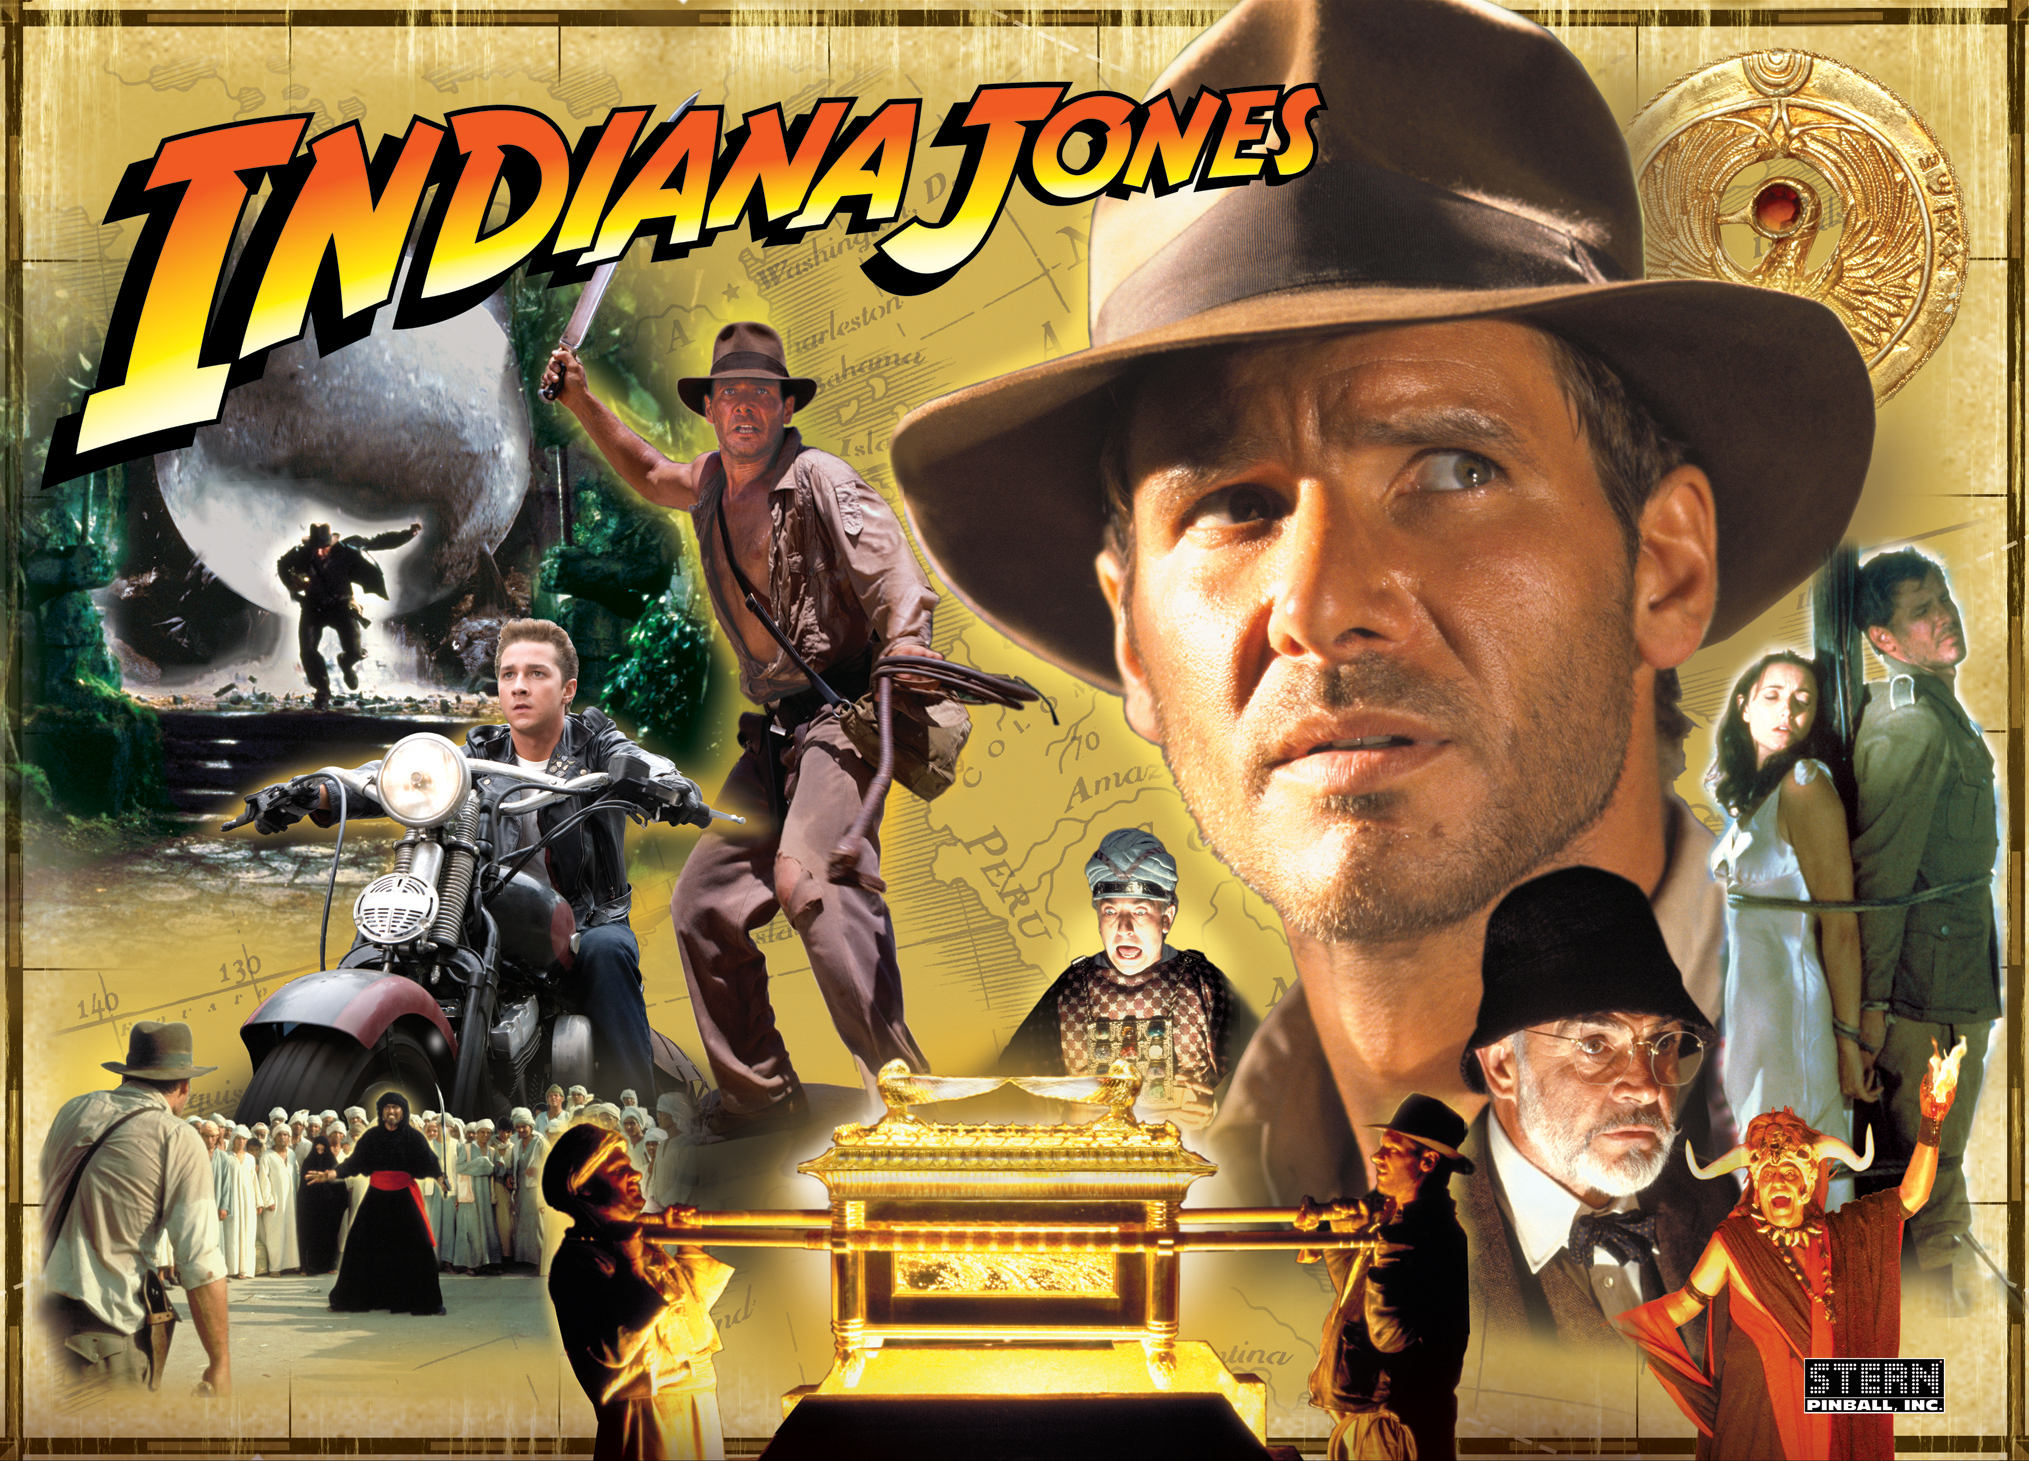 http://november-project.com/wp-content/uploads/2012/10/Indiana-Jones.jpeg